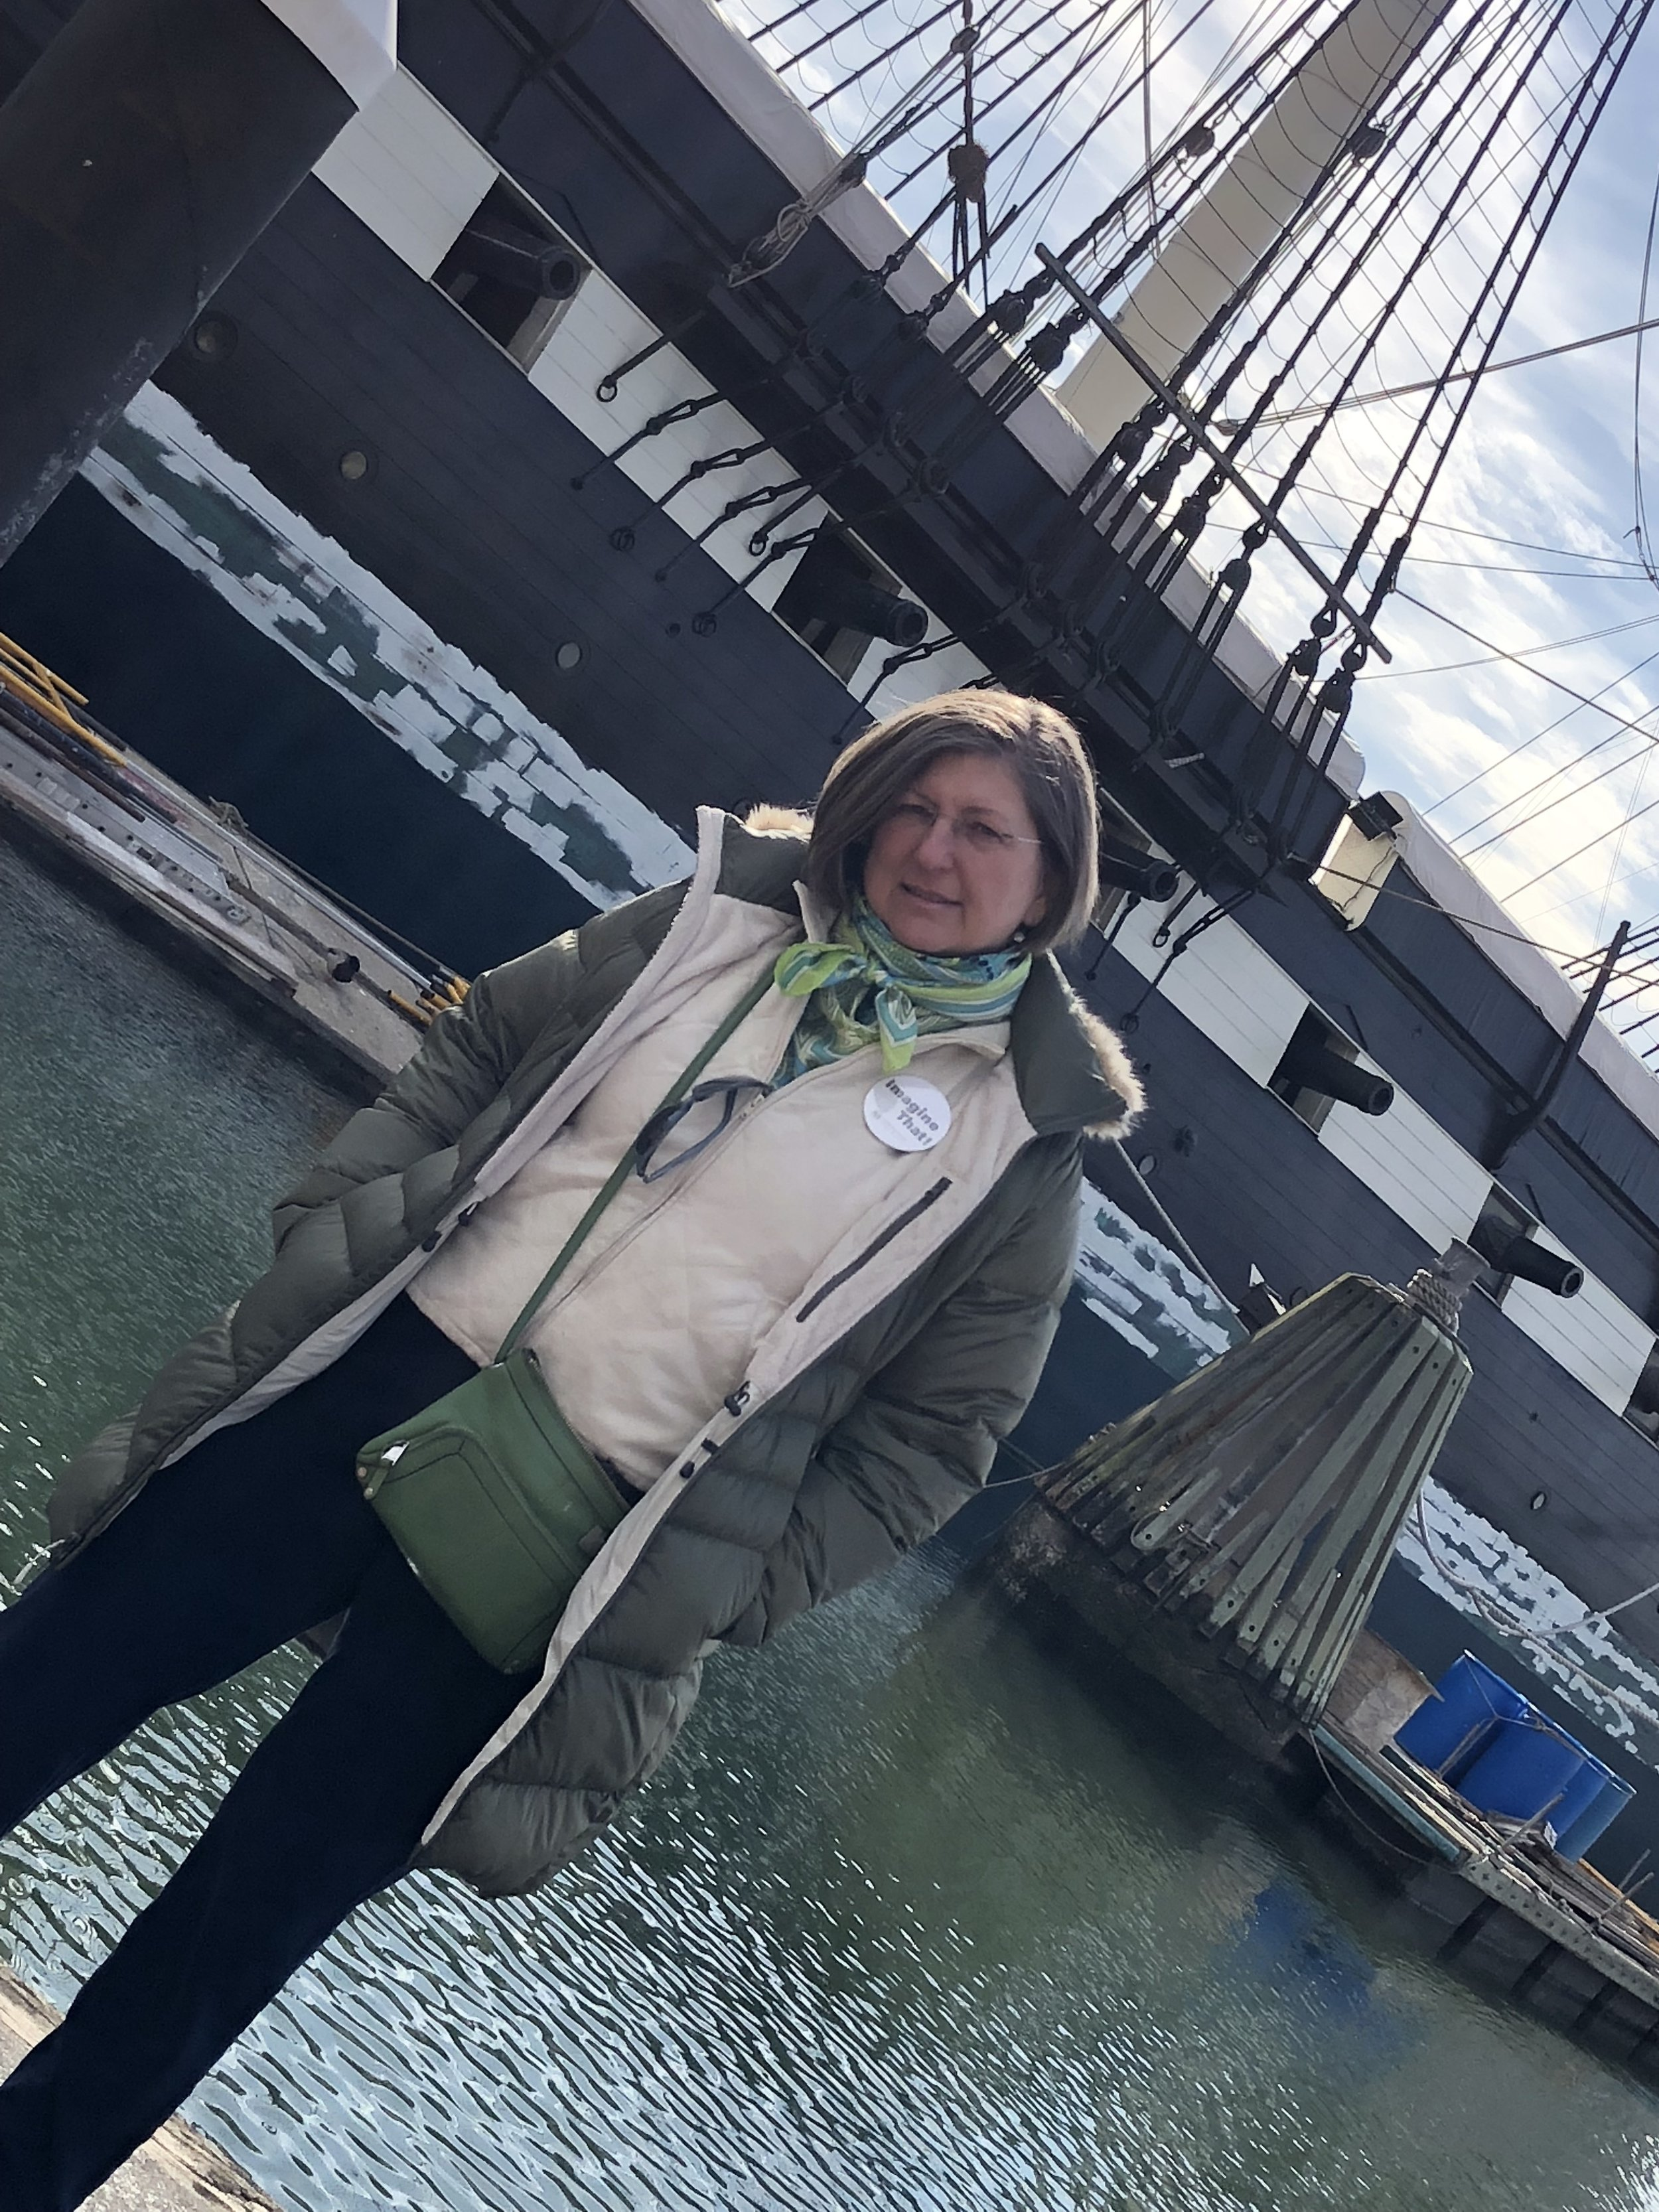 Anne Markham Bailey at her great grandfather's ship, the USS Constellation, in Baltimore Harbor.